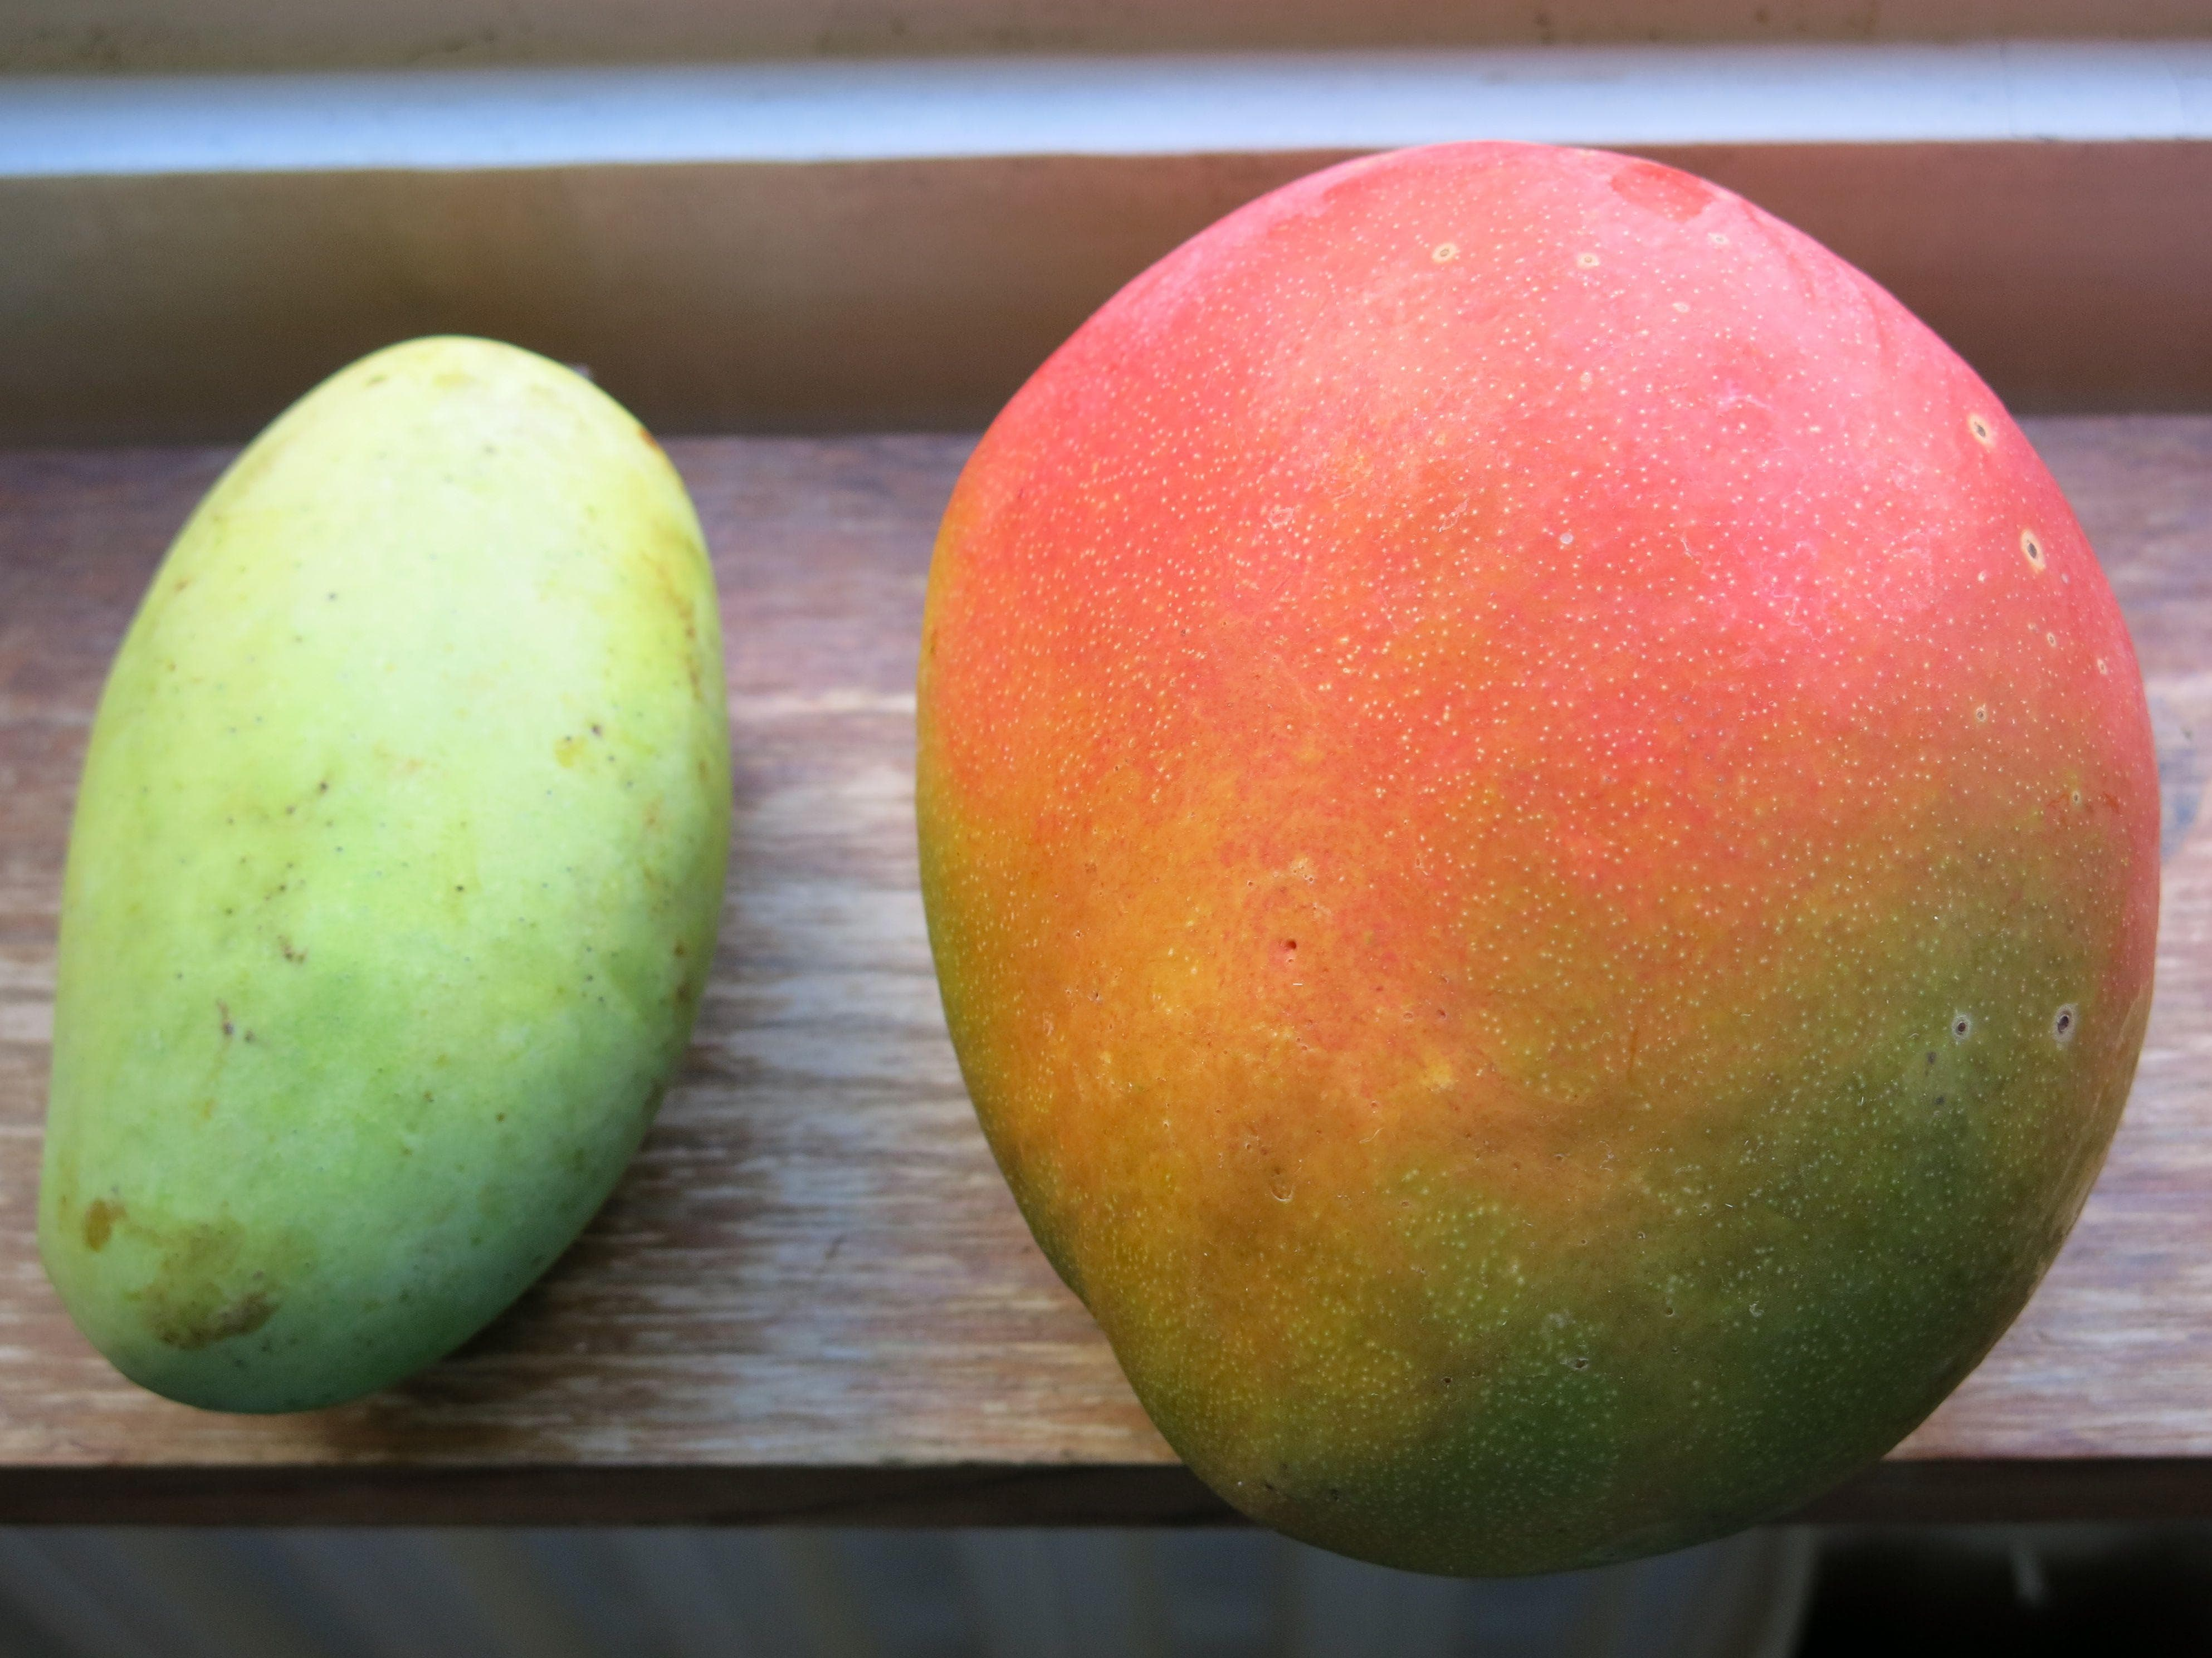 Domesticated Mangoes Are Supersized on Random Pics Of Common Fruits As You Know Them Compared To Their Undomesticated Forms